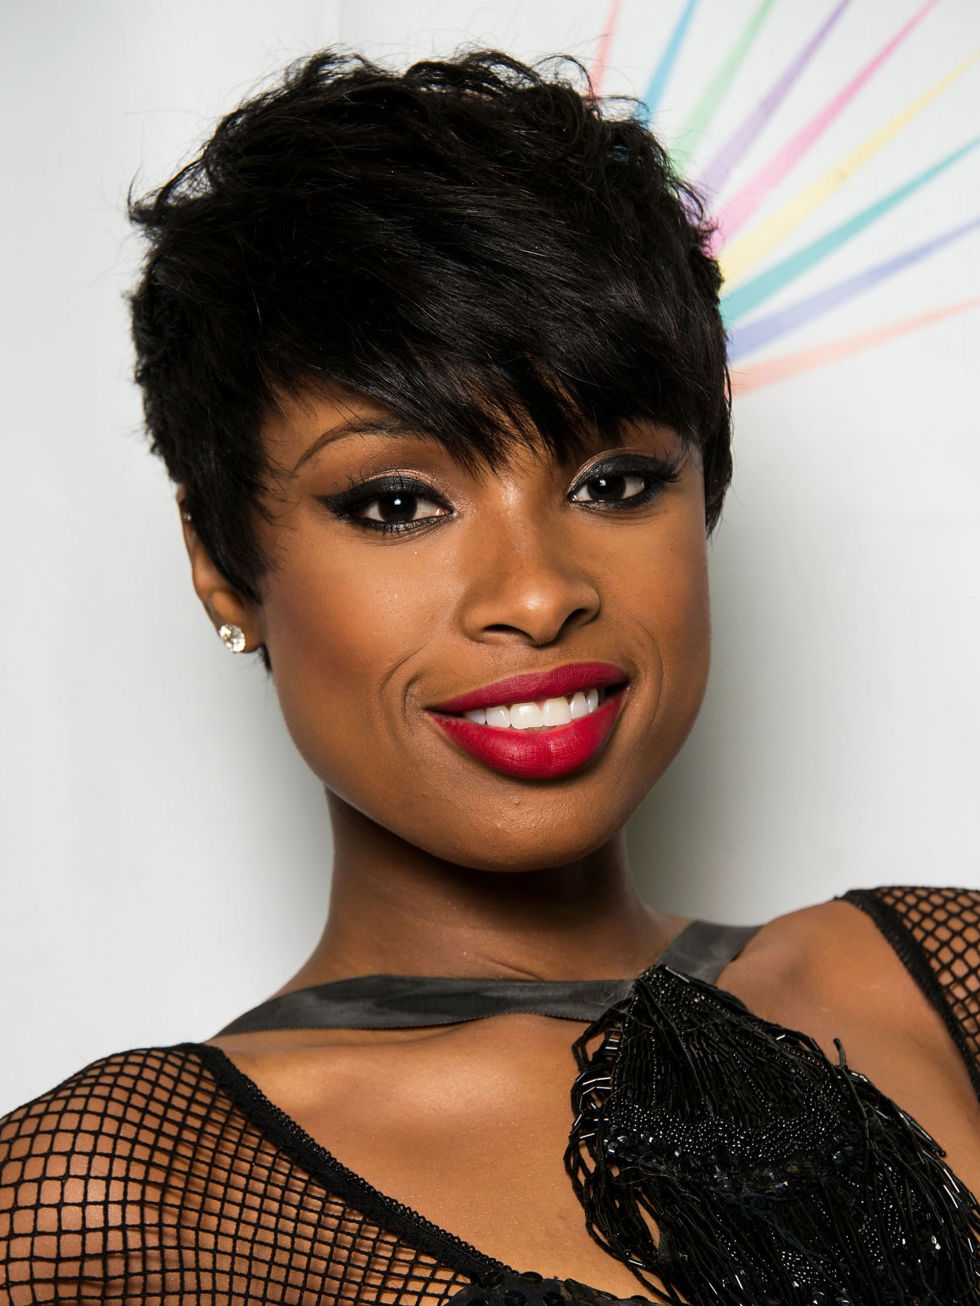 How To Grow Out Your Hair Celebs Growing Out Short Hair - Black people short hairstyles